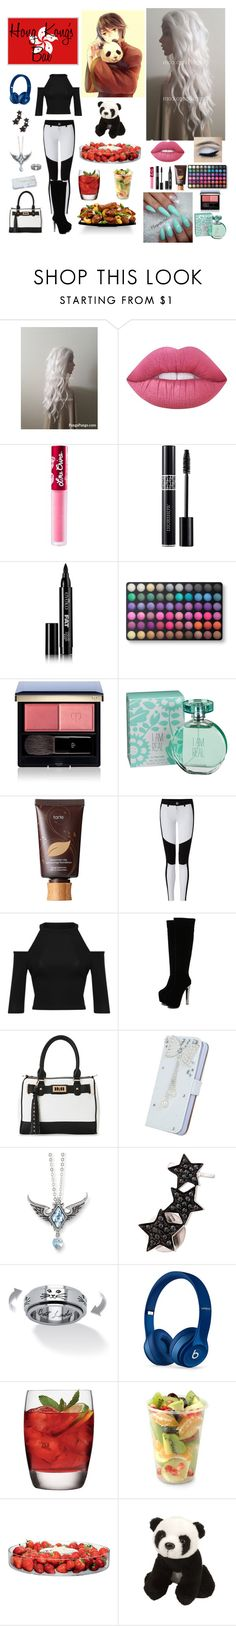 """Hong Kong's Bae"" by hetalia2013 ❤ liked on Polyvore featuring Lime Crime, Christian Dior, Eyeko, BHCosmetics, Clé de Peau Beauté, maurices, tarte, WearAll, IMoshion and Alinka"